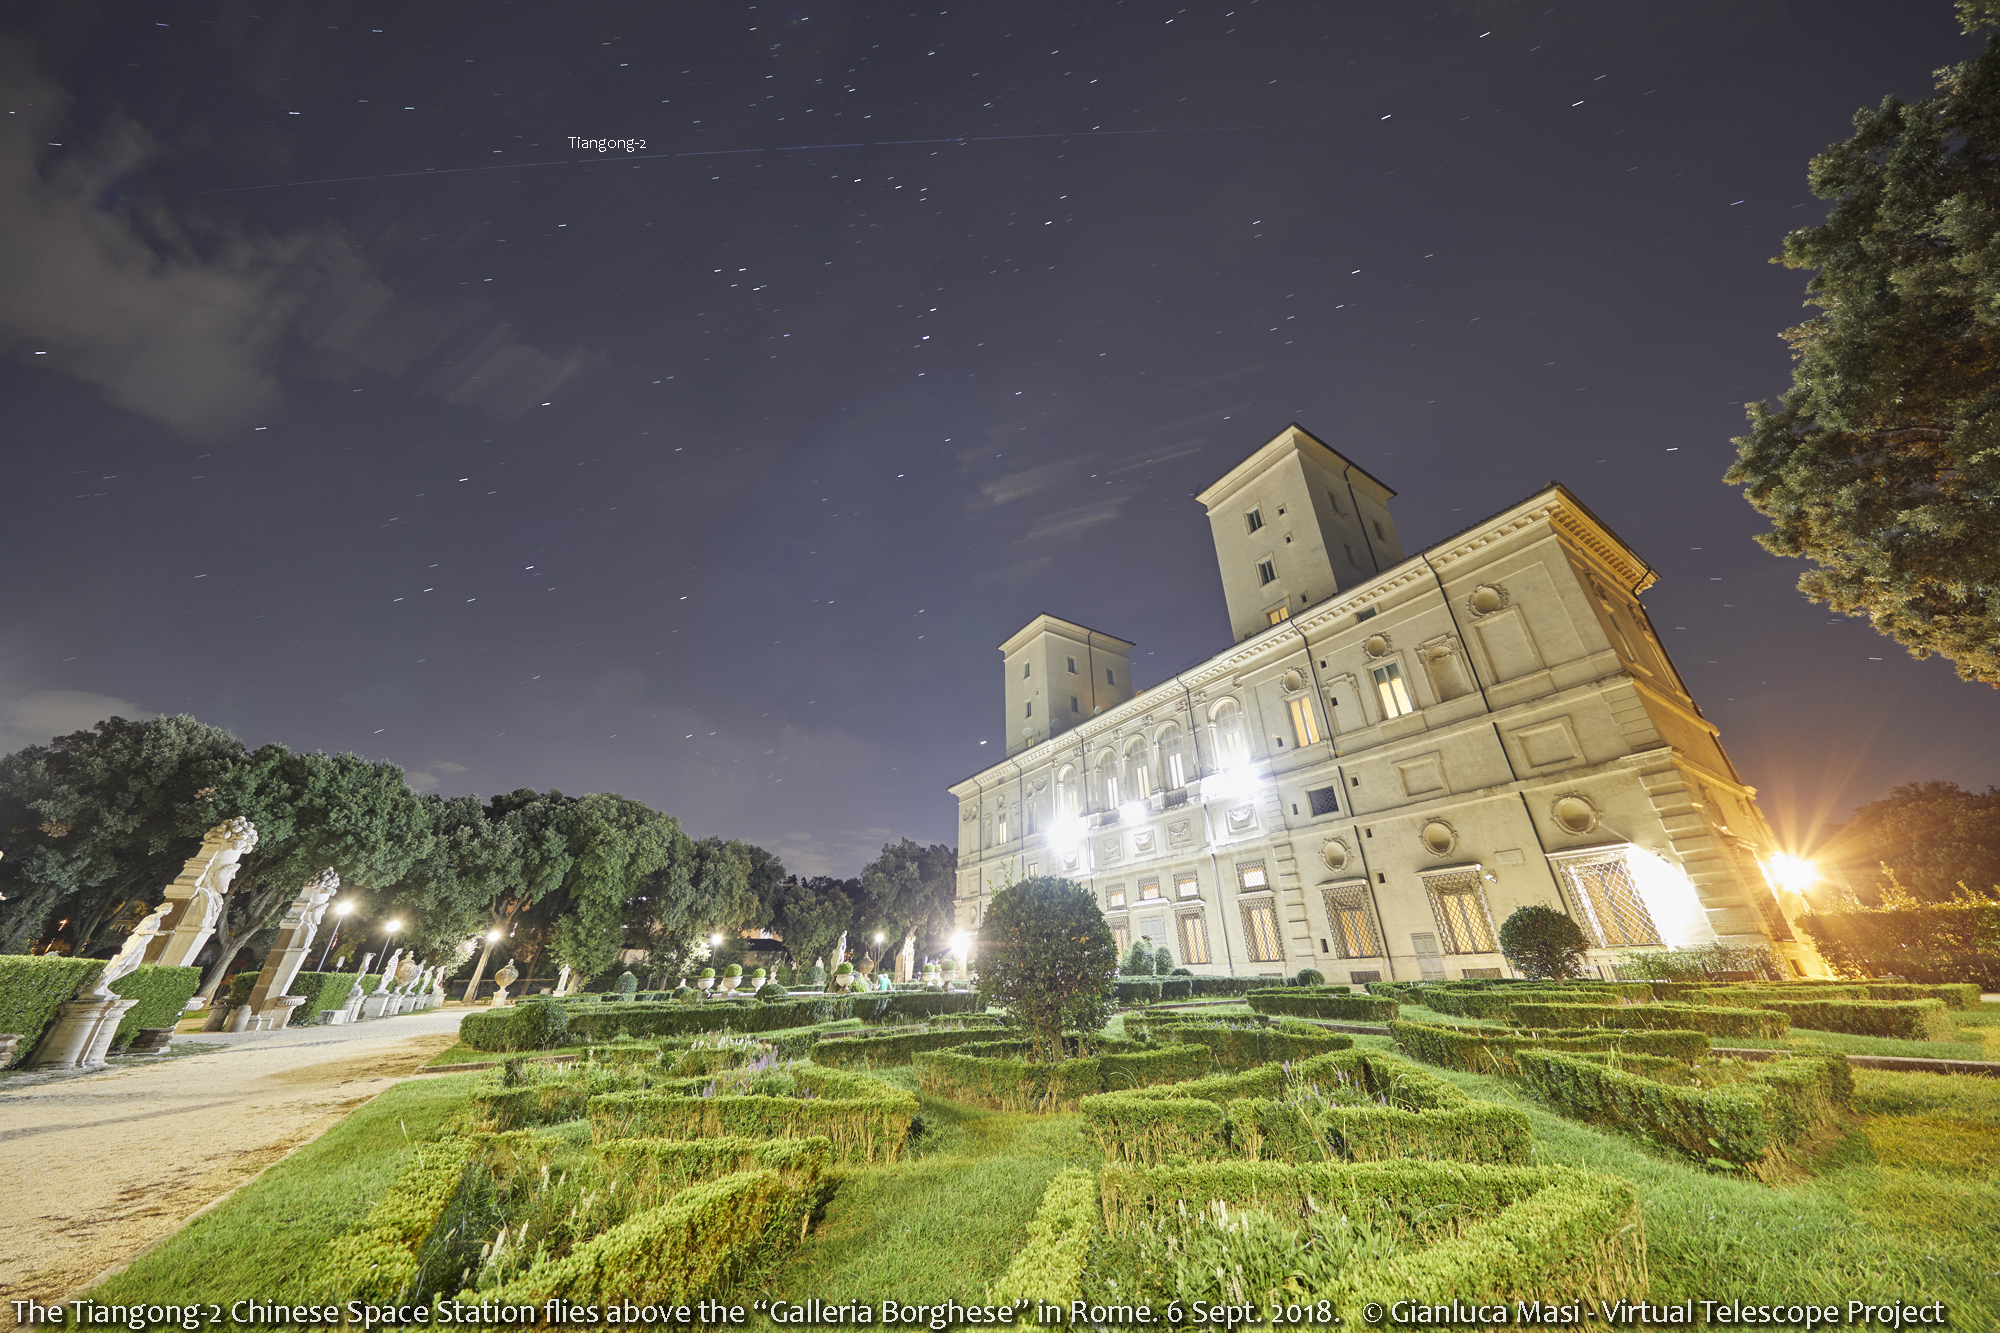 The Tiangong-2 flies above the Galleria Borghese Museum in Rome - 6 Sept. 2018